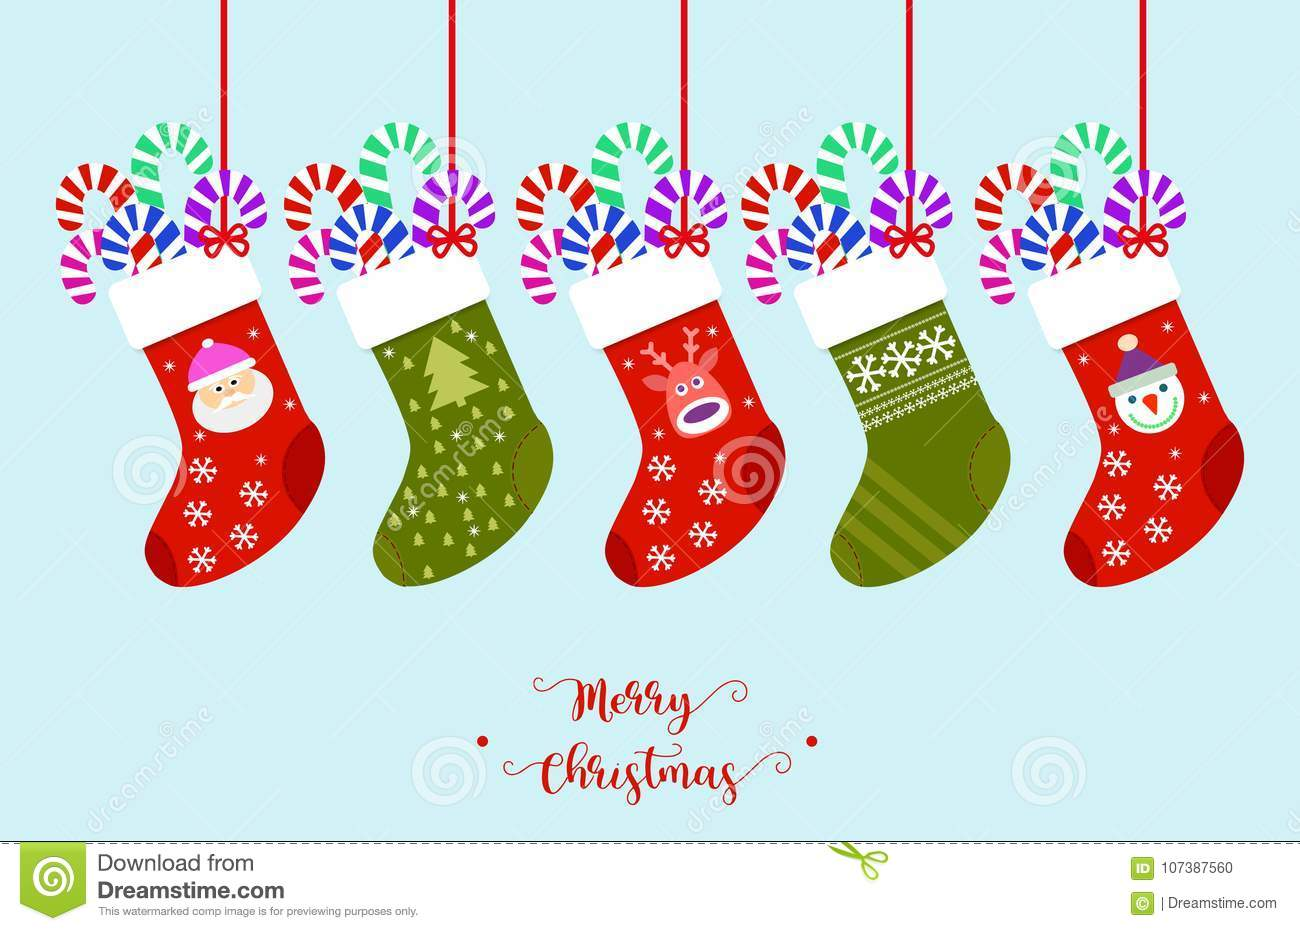 download christmas stockings vector stock vector illustration of happy 107387560 - Funny Christmas Stockings